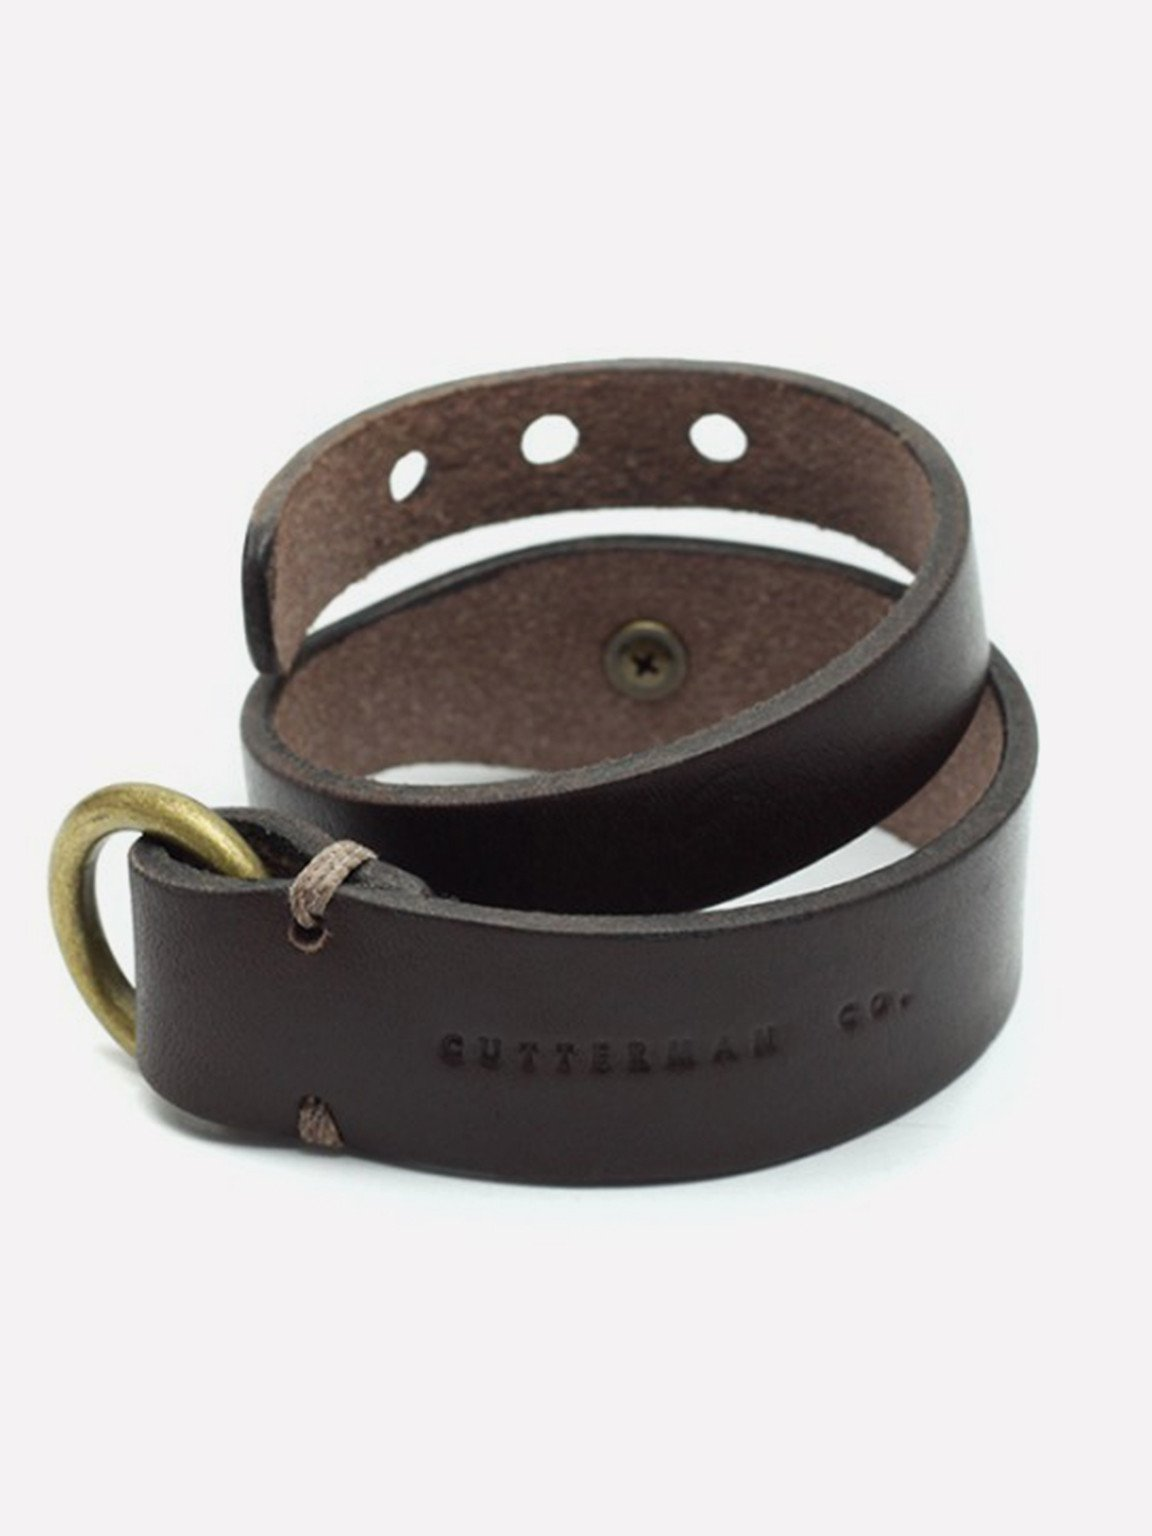 Foto do Bracelete Cutterman Co Over Strap